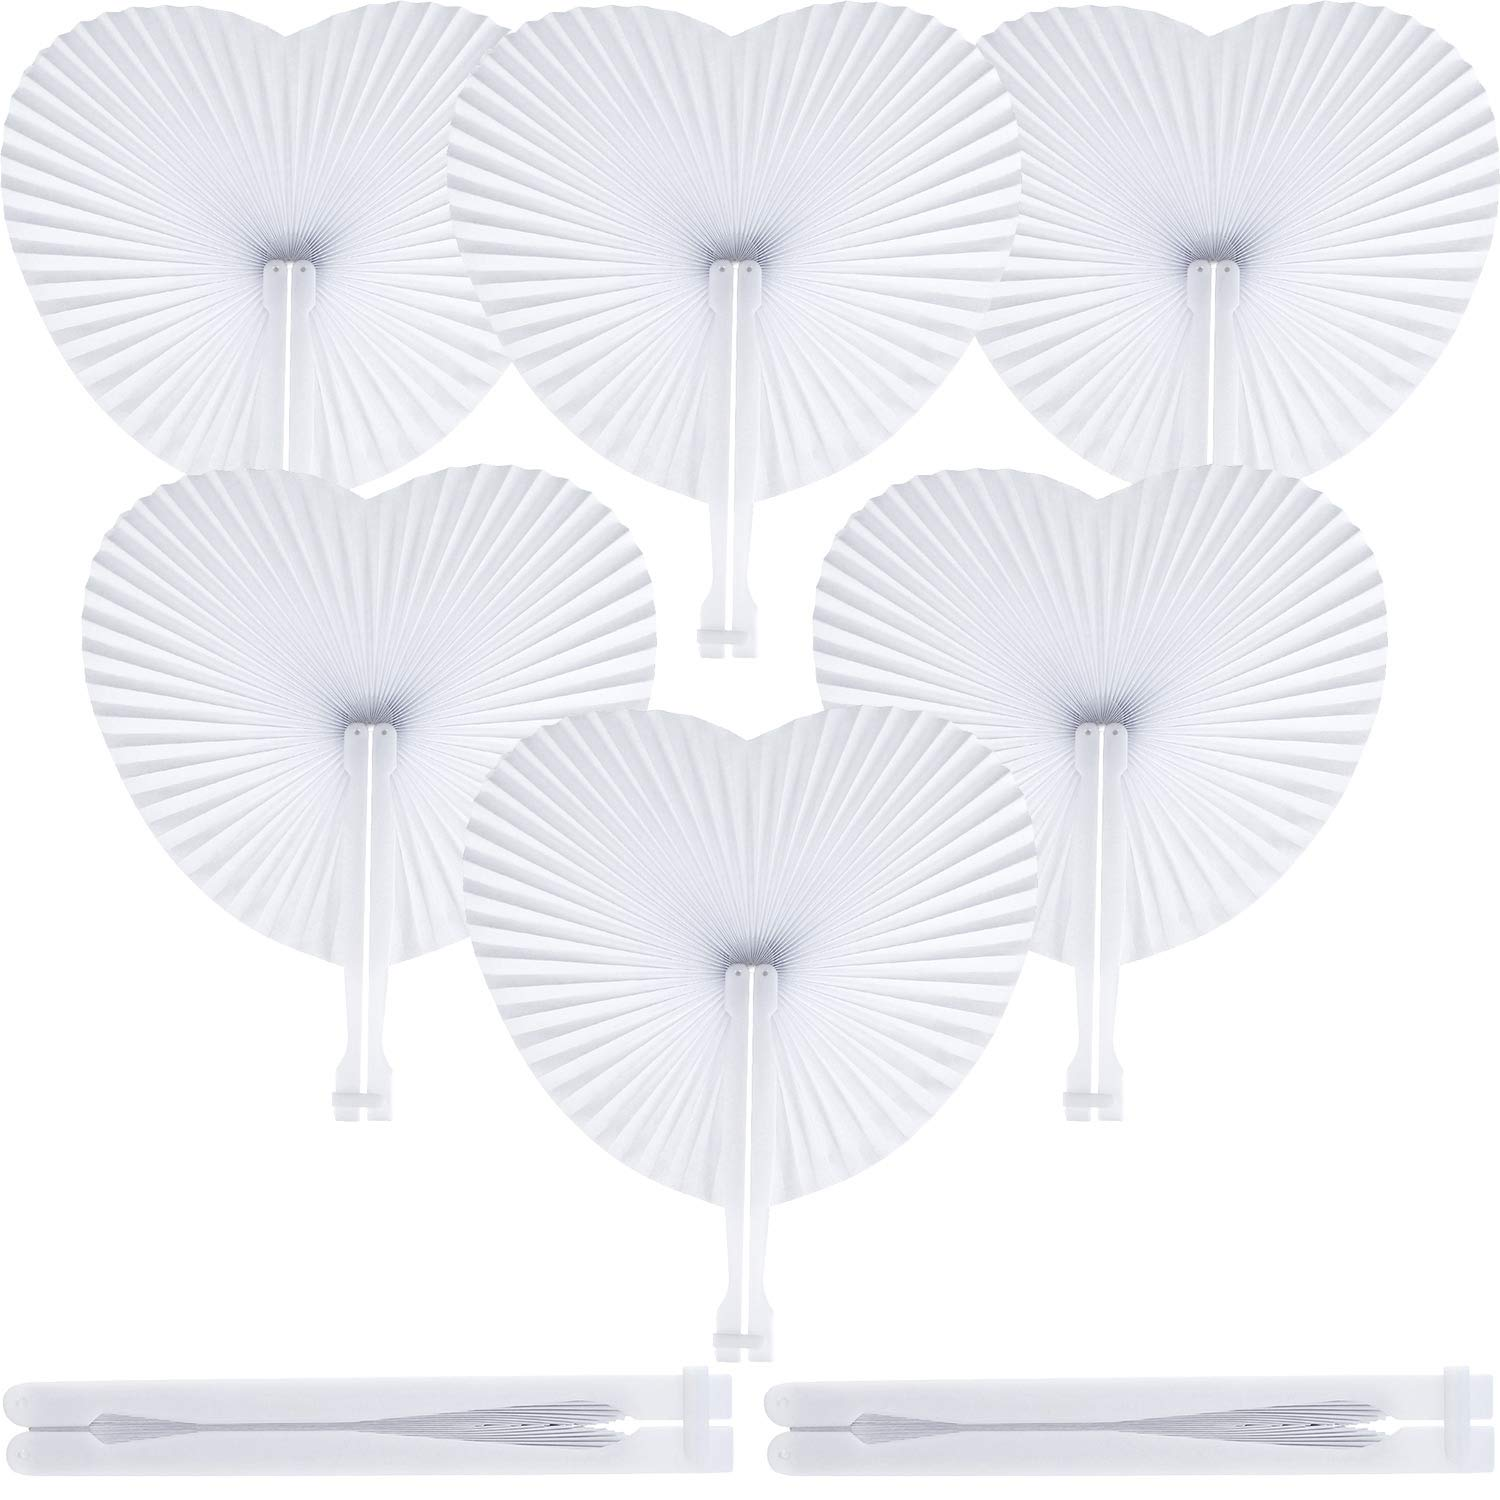 48 Pack Handheld Heart Shaped Paper Fans Folding Accordion Fans Assortment for Summer Outdoor Beach Wedding Party Bag Filler Birthday Favors Decoration Gejoy